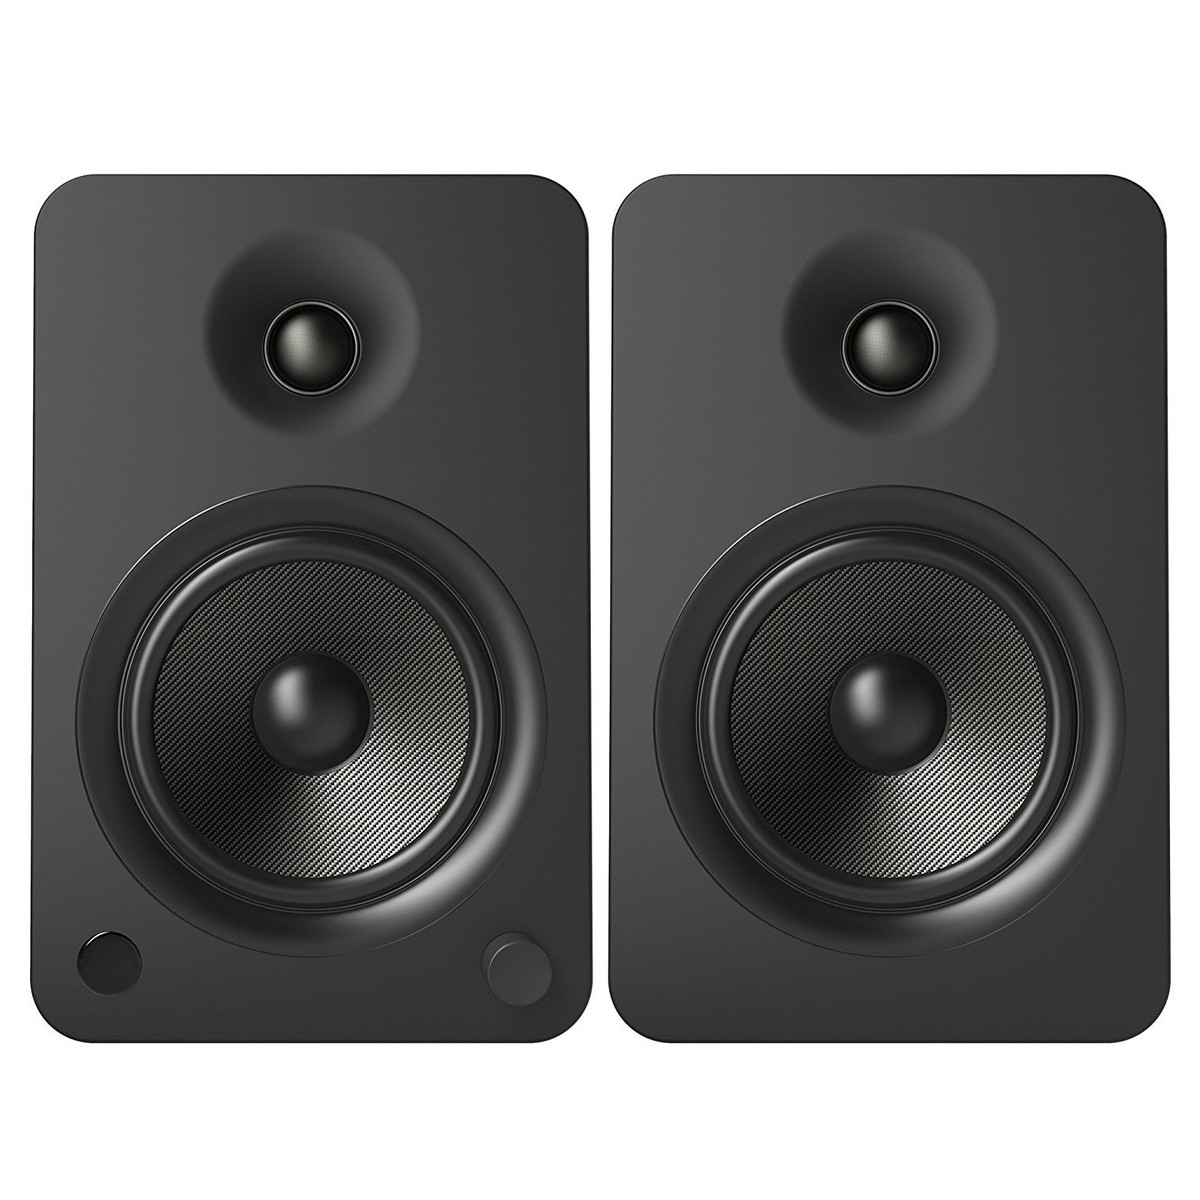 speakers products buy now powered pair audioengine bookshelf